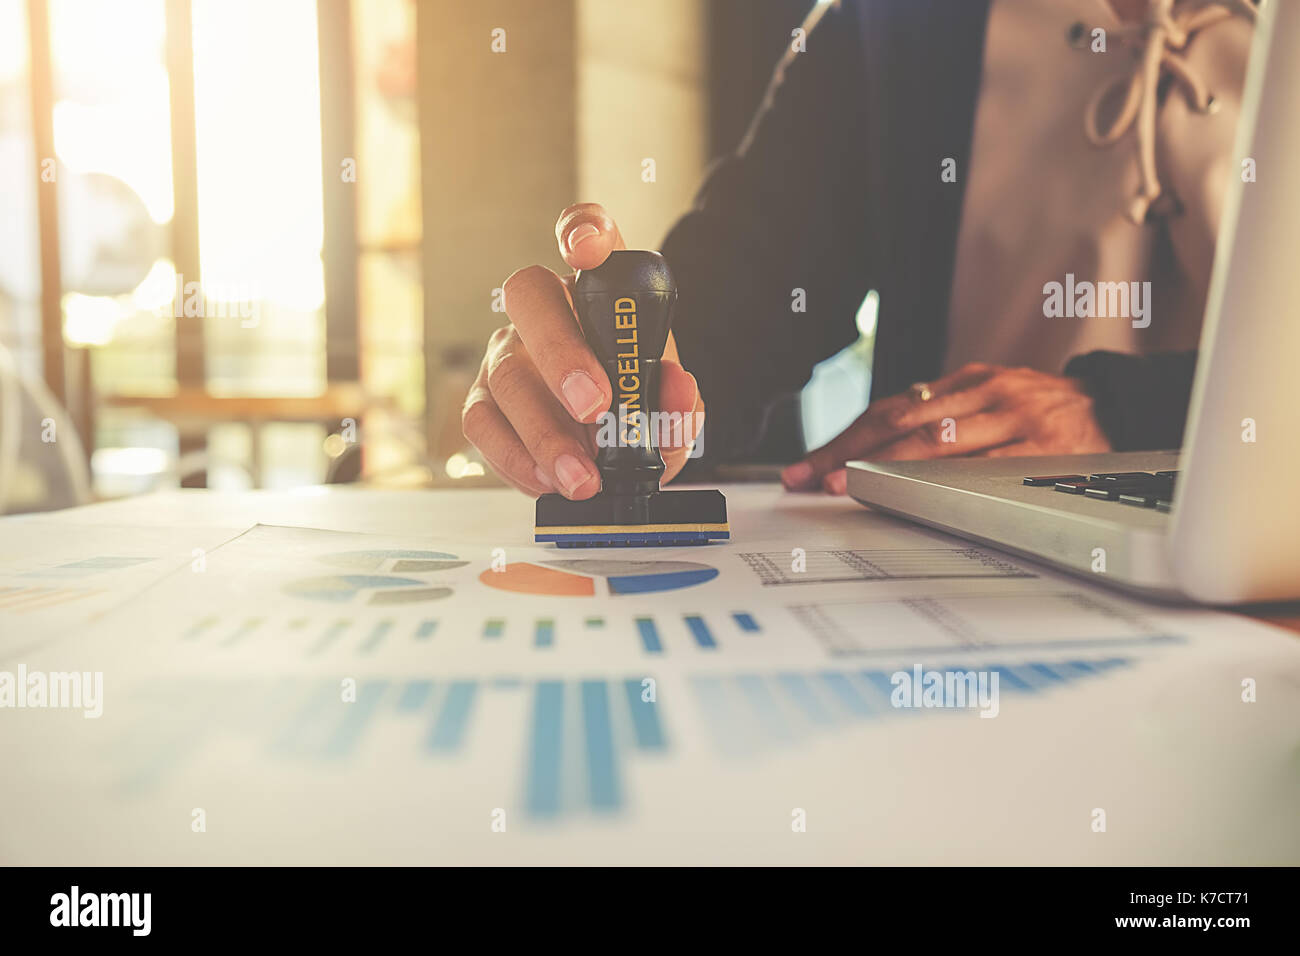 Business concept. Business people Hand Holding Rubber Stamp Over cancelled Stamp On datum. - Stock Image